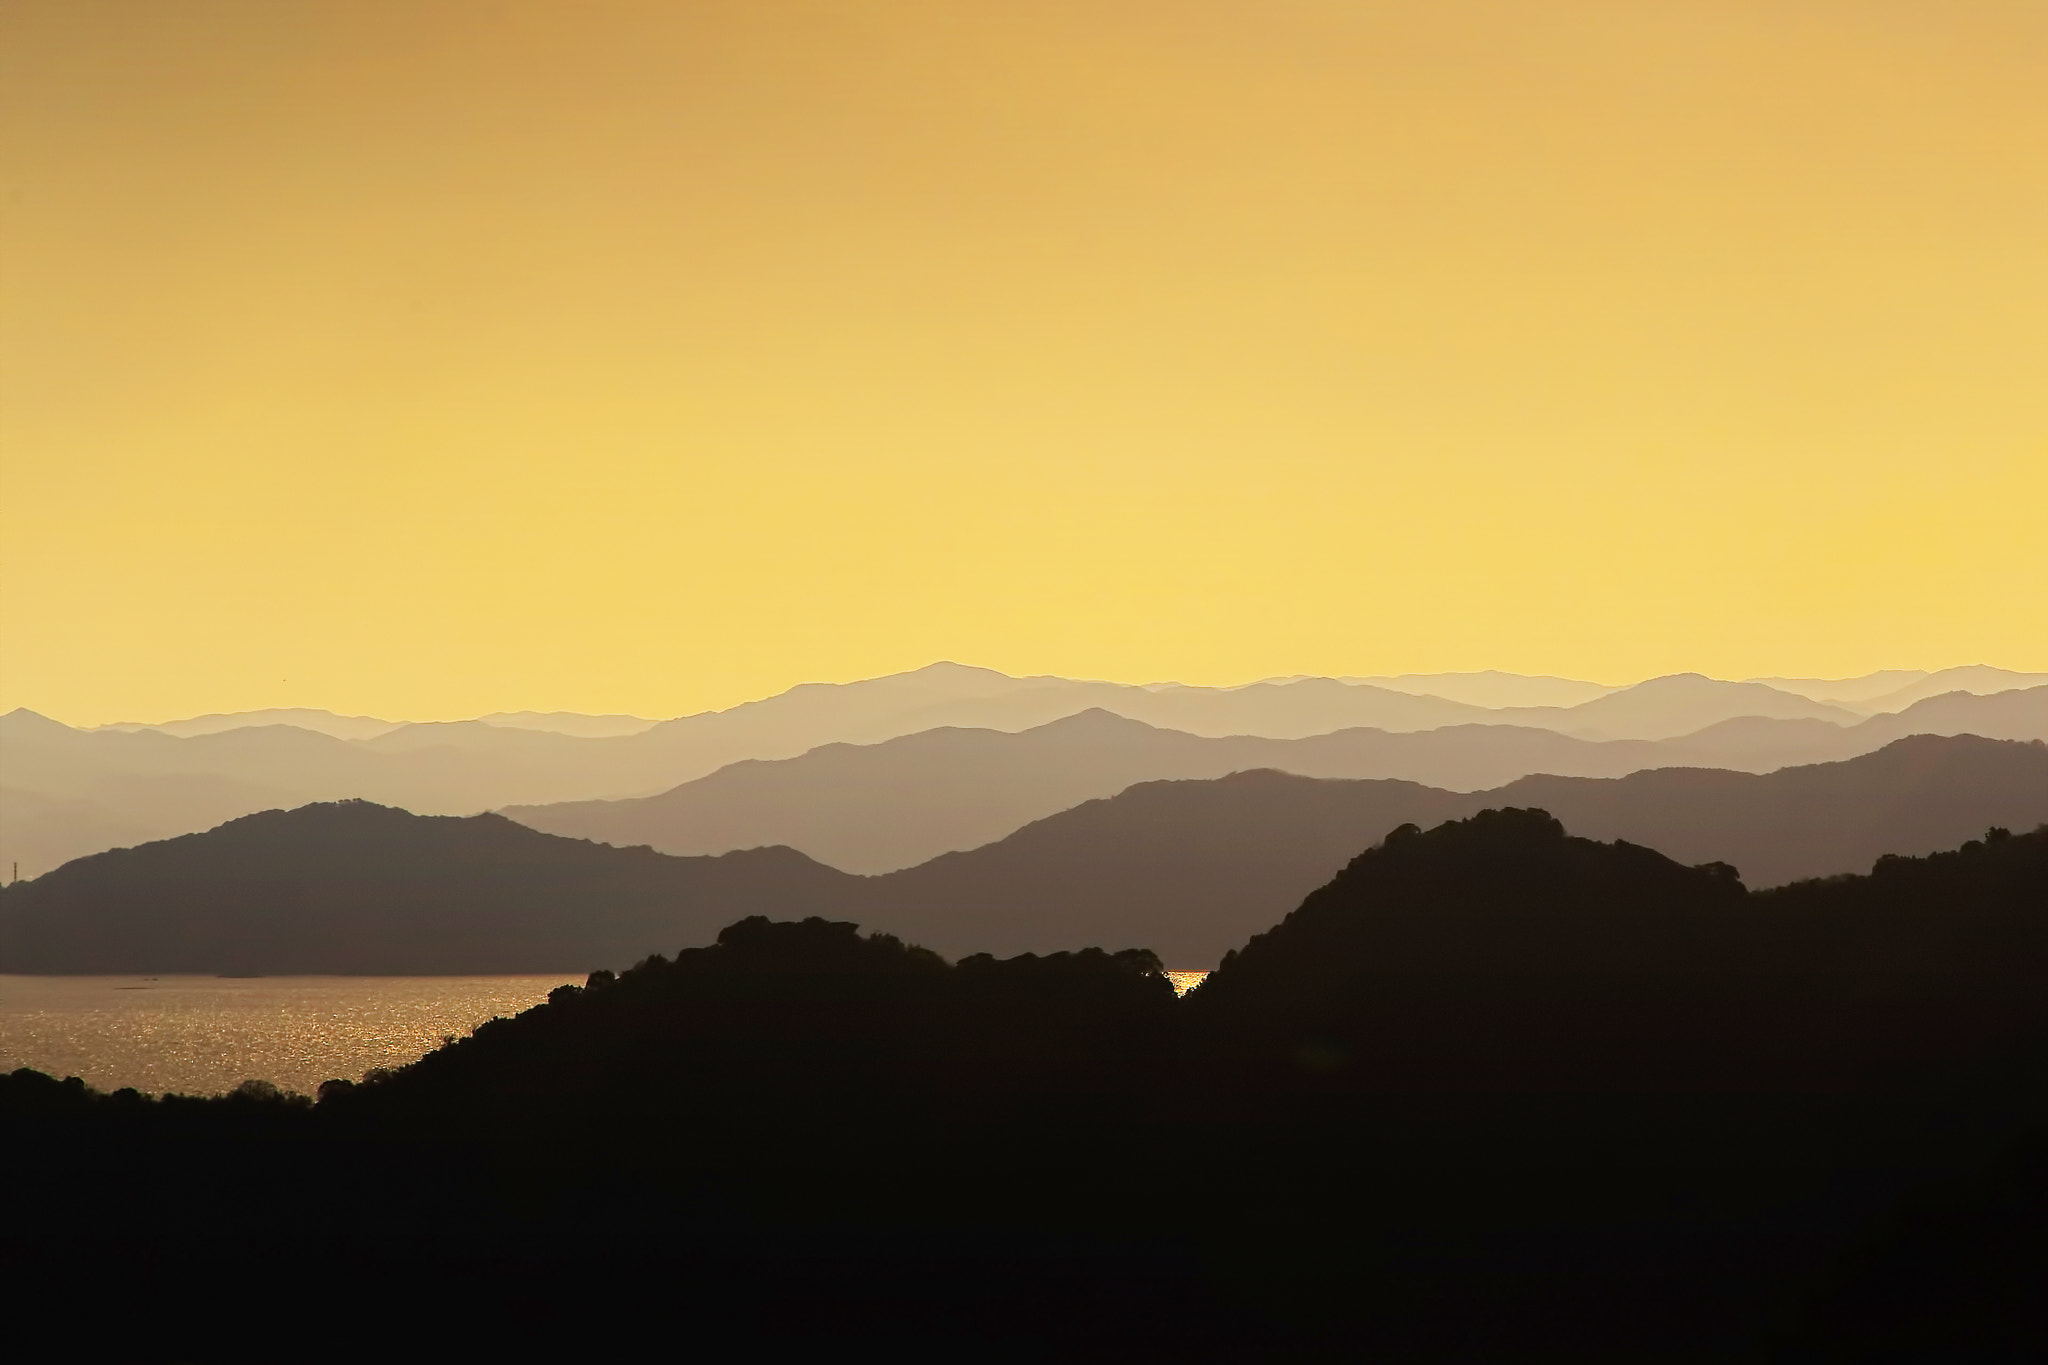 Photograph Mountains in sunset by MIYAMOTO Y on 500px